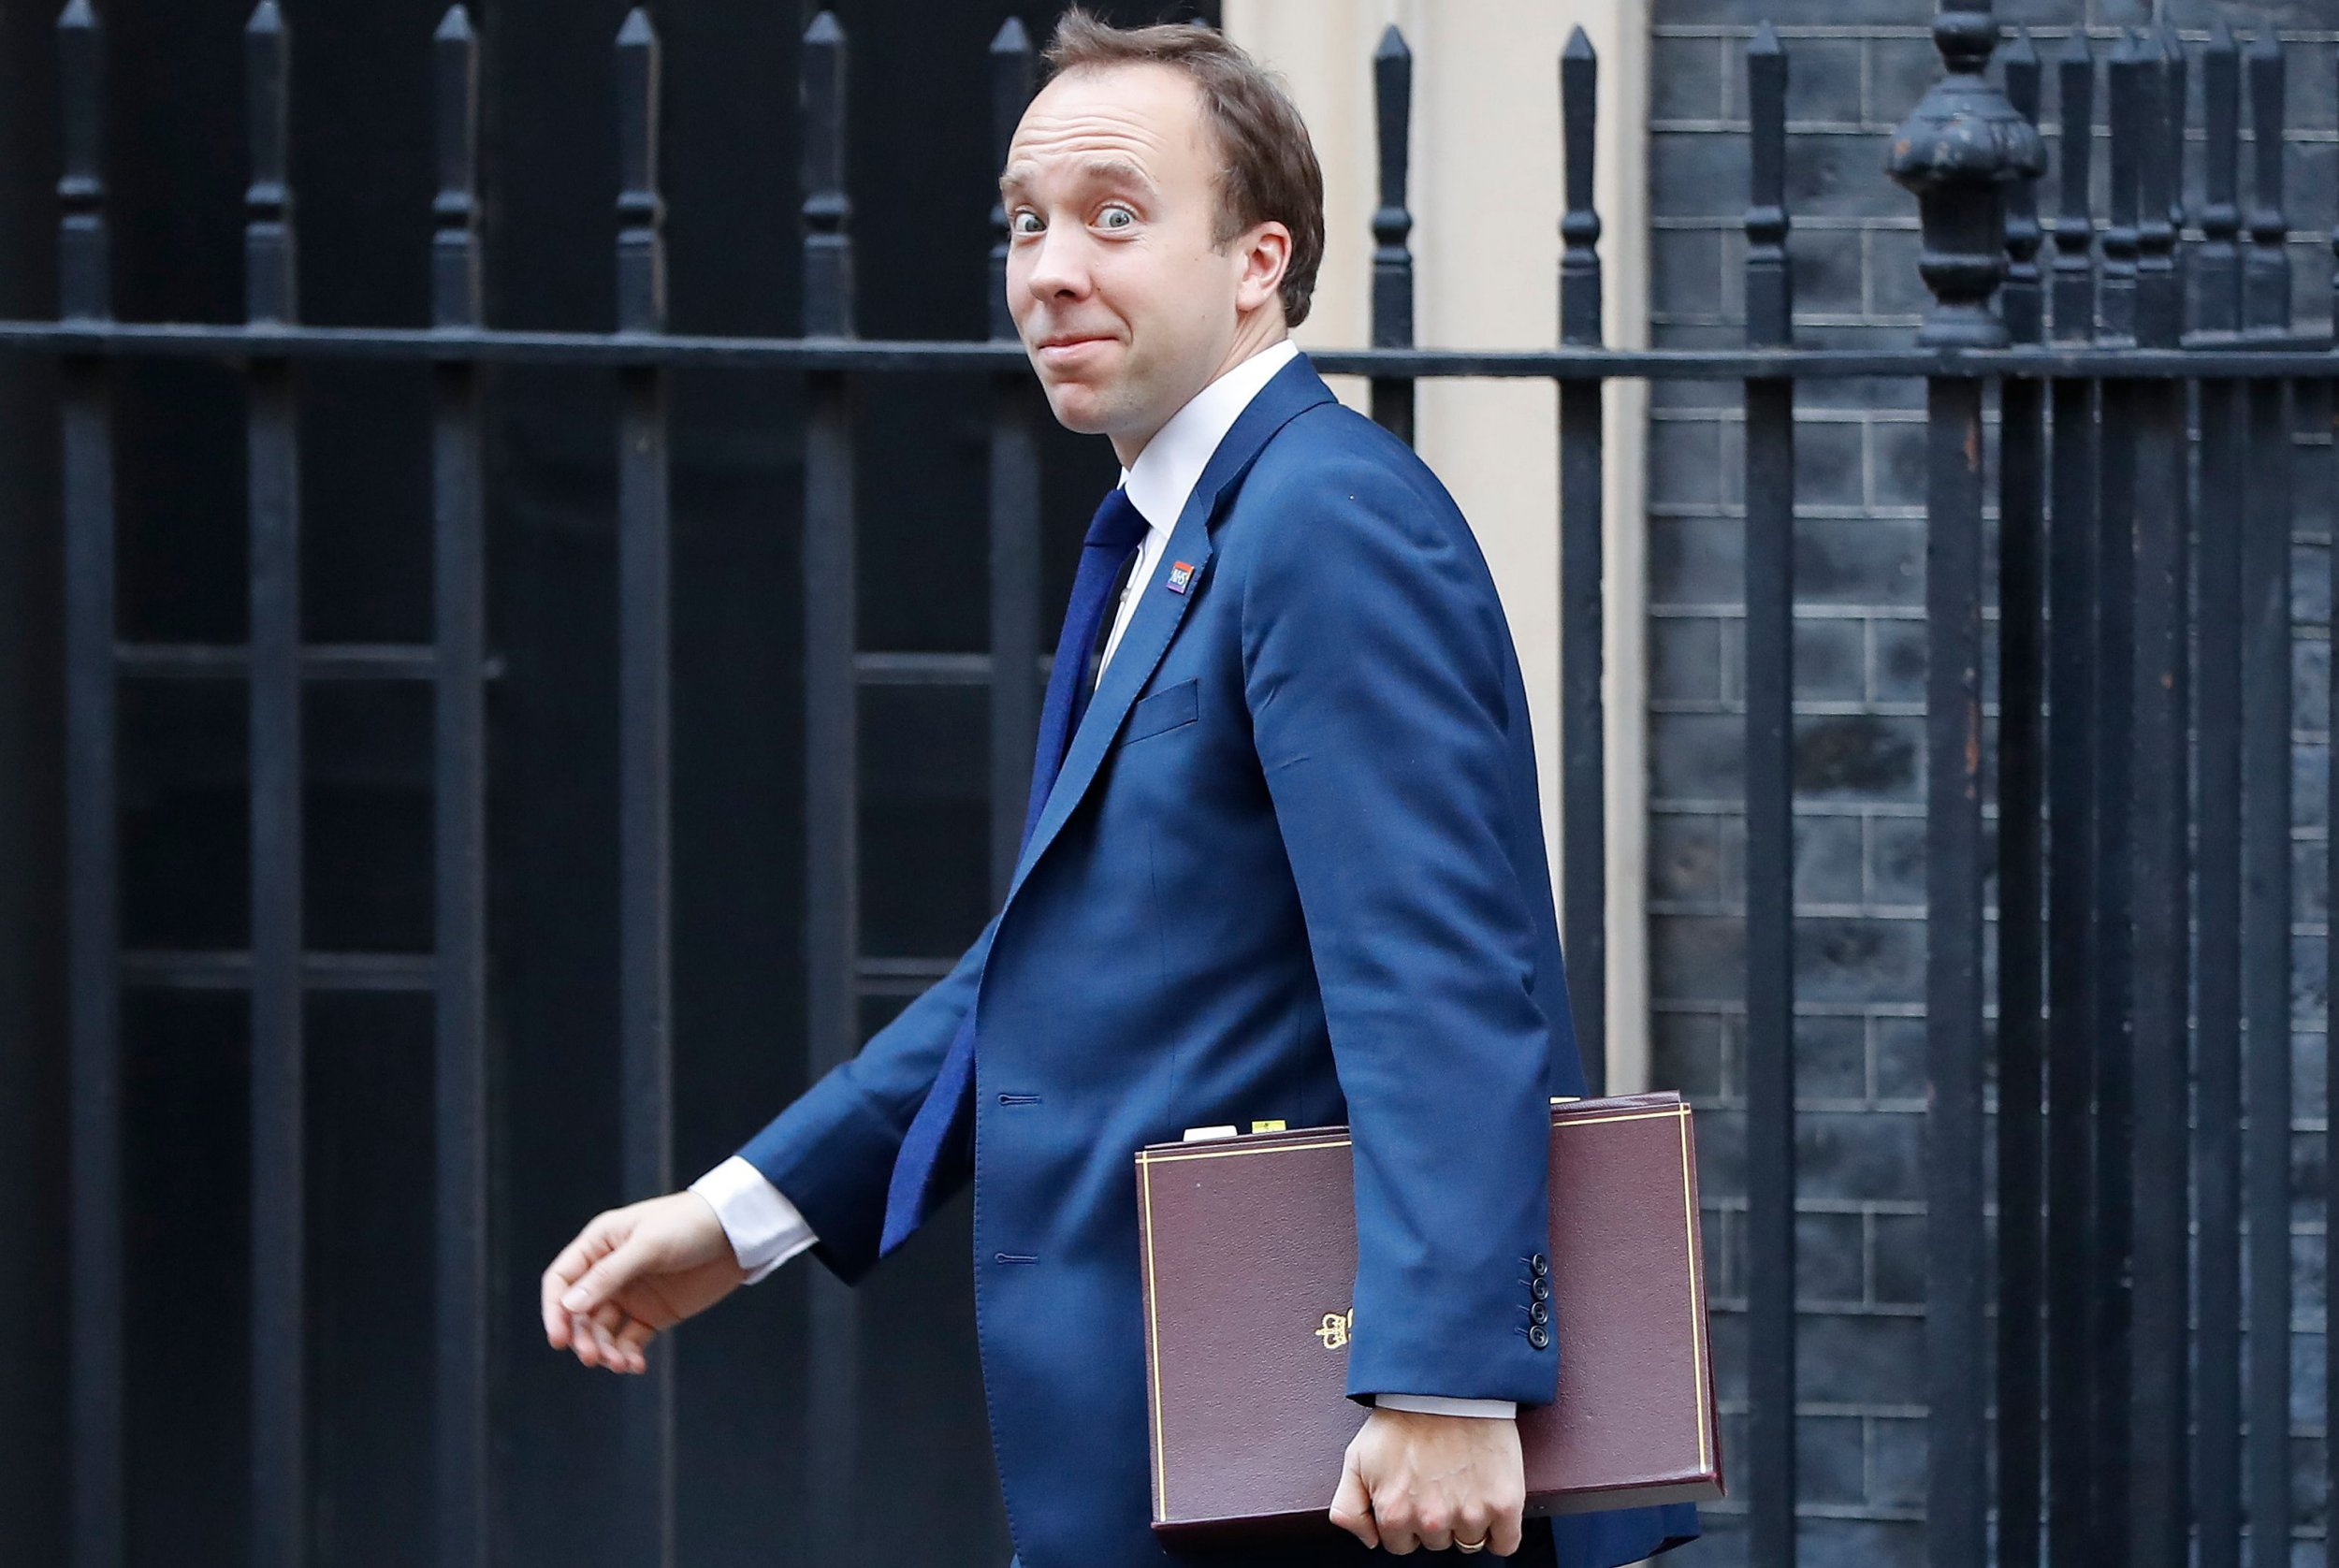 Britain's Health and Social Care Secretary Matt Hancock leaves after attending the weekly meeting of the cabinet at 10 Downing Street in London on November 13, 2018. - Prime Minister Theresa May today faced her divided ministers as negotiators scrambled to secure a divorce agreement with the European Union and anxiety mounted over the risk of a no-deal Brexit. (Photo by Tolga AKMEN / AFP)TOLGA AKMEN/AFP/Getty Images